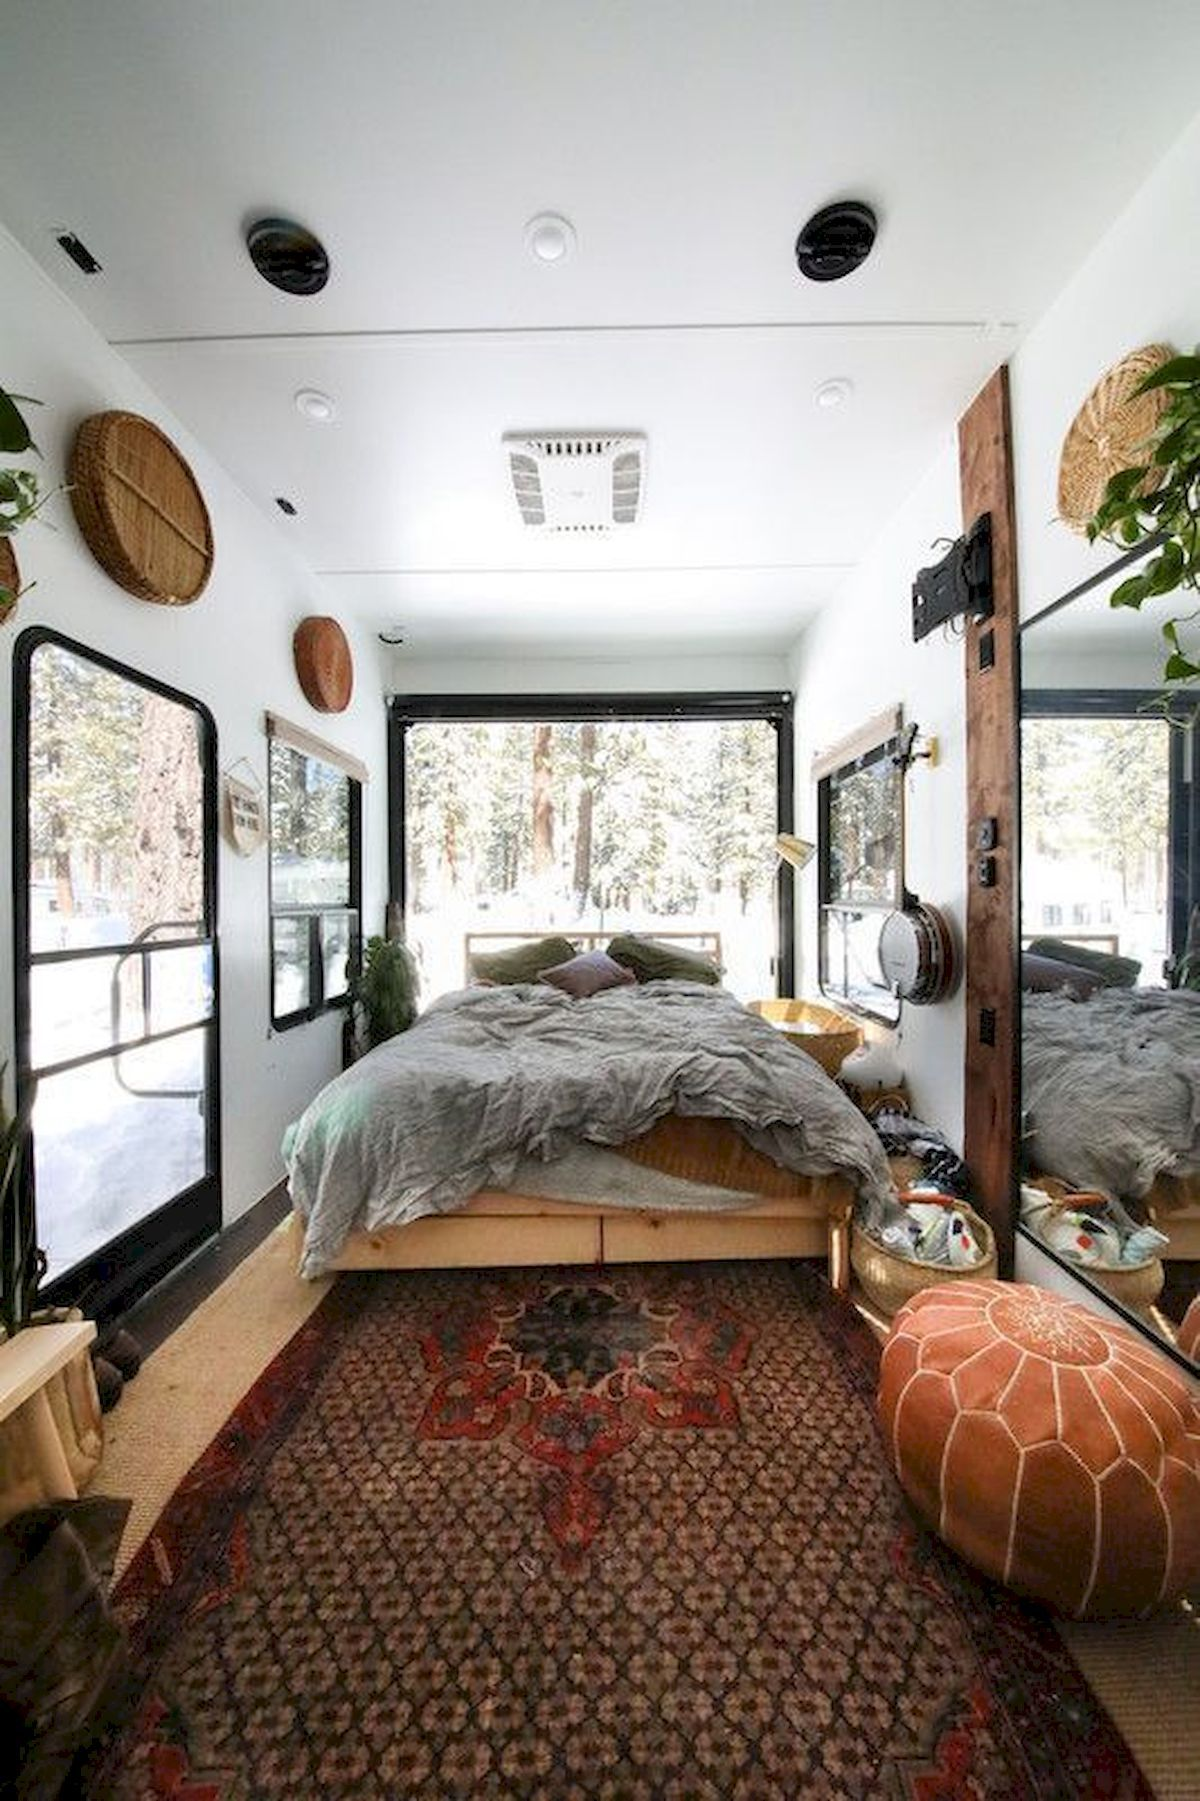 incerdible photo gallery rustic rv interior also this converted sprinter van is  surprisingly livable tiny house on rh pinterest